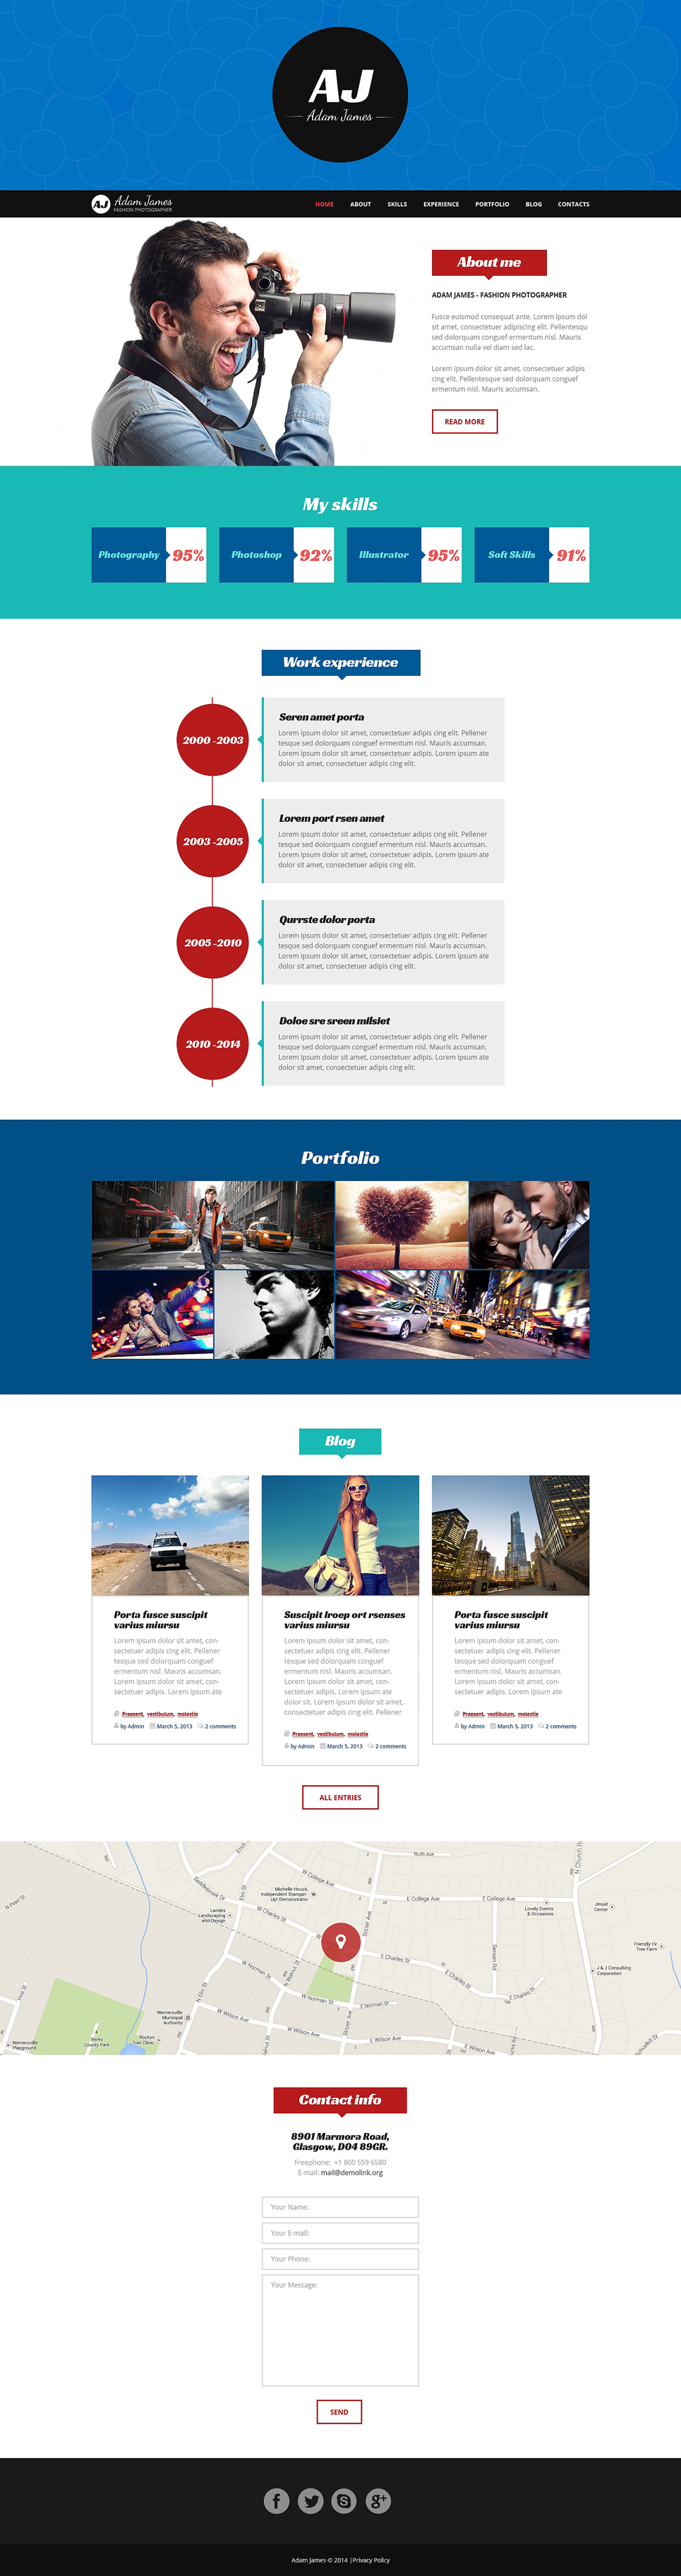 Page Of Fashion Photographer Wordpress Theme 49155